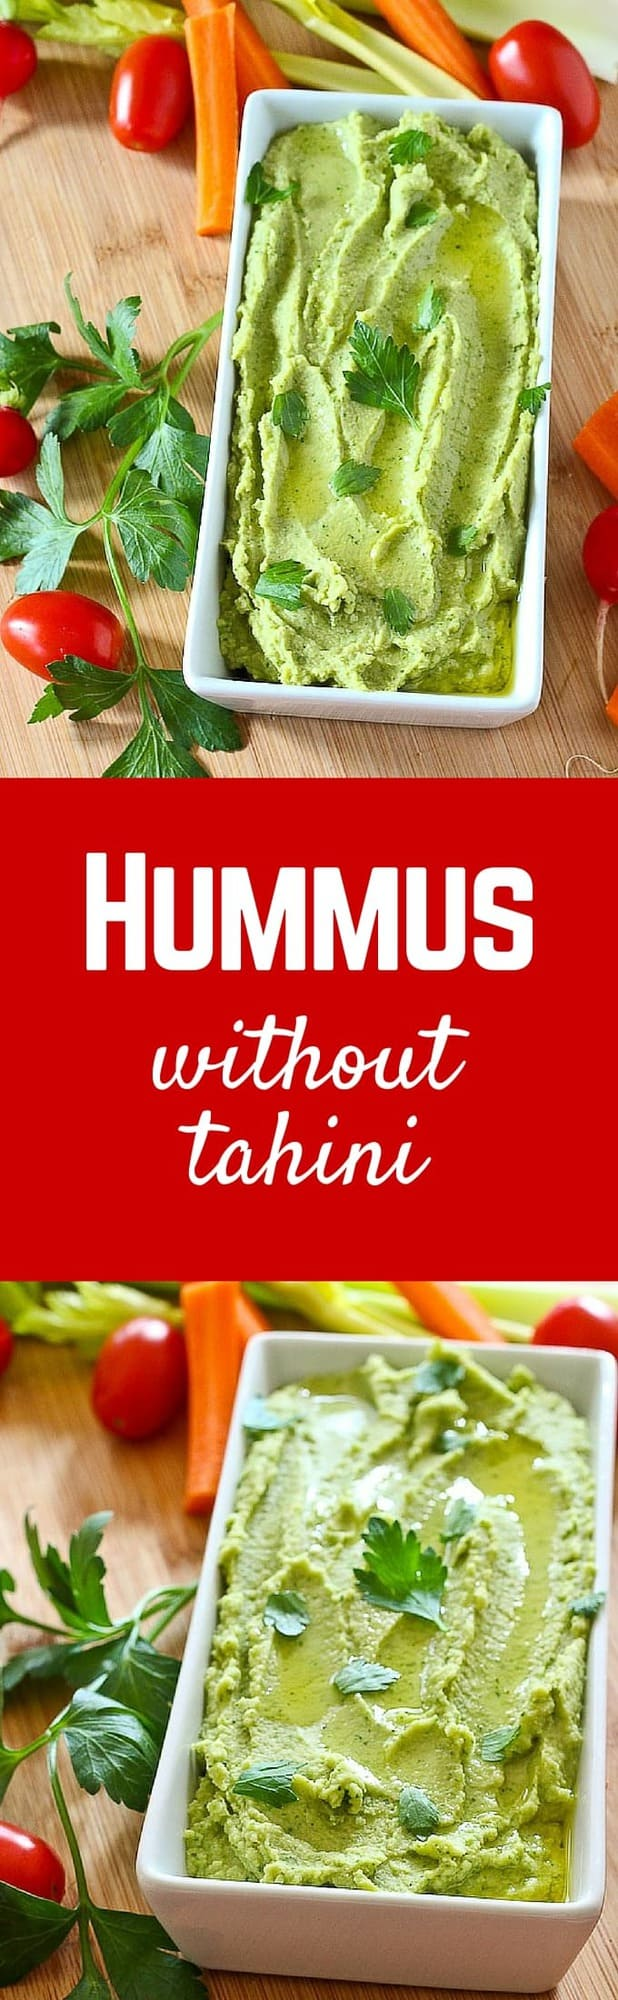 If you don't like or can't have tahini, this parley hummus without tahini should be your bean dip of choice! It comes together in 10 minutes or less and is perfect for healthy dipping. Get the healthy dip recipe on RachelCooks.com!